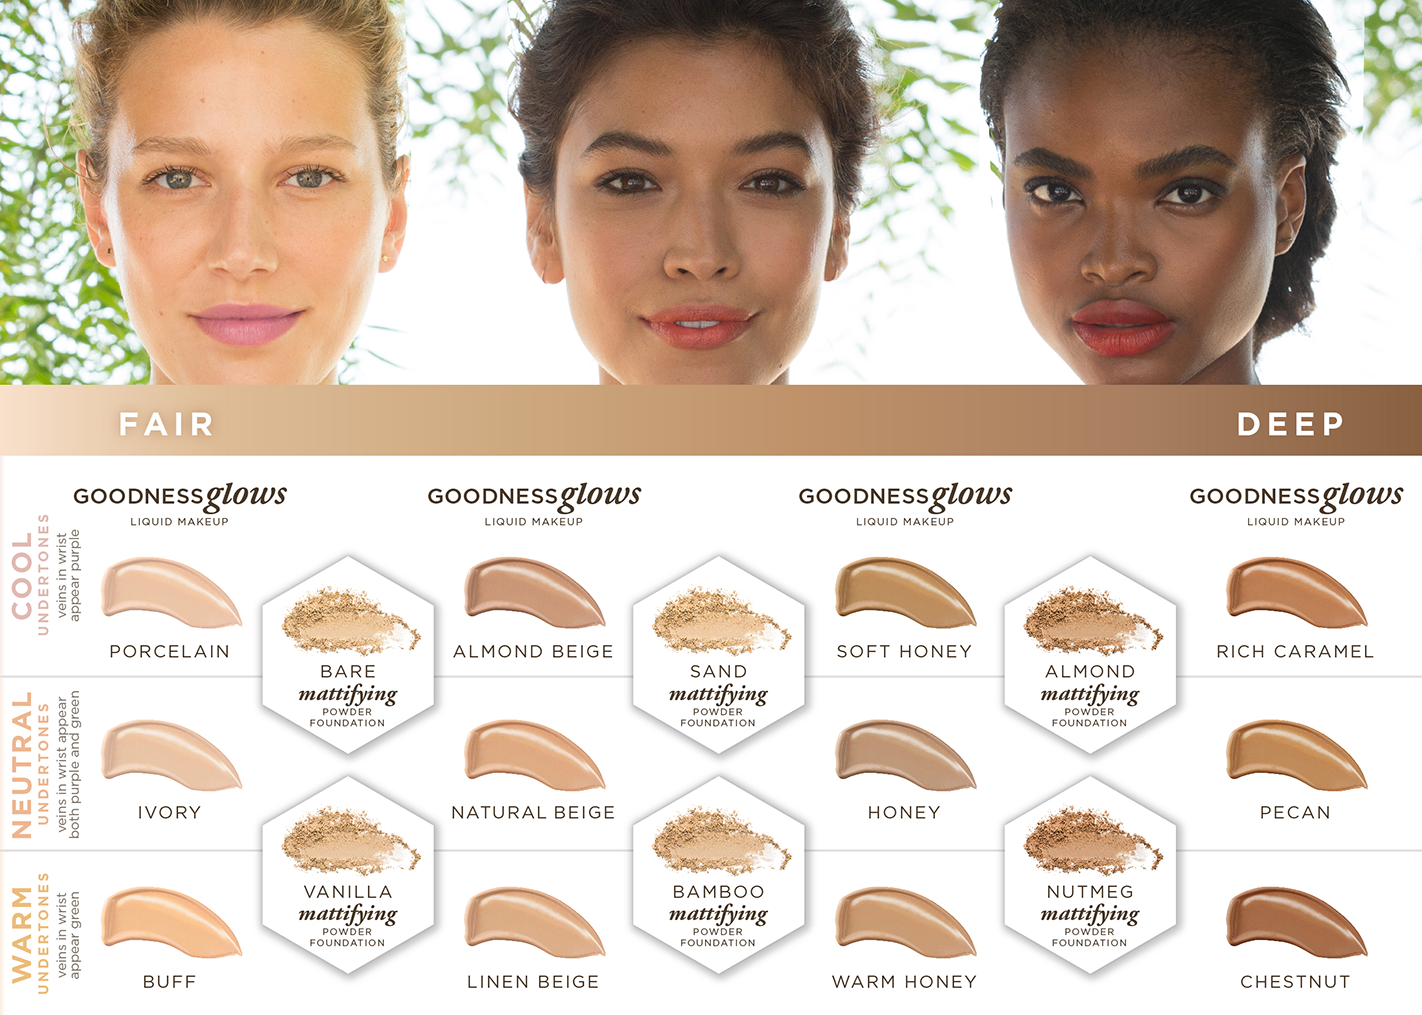 Burt's Bees Goodness Glows Foundation Review Burts bees